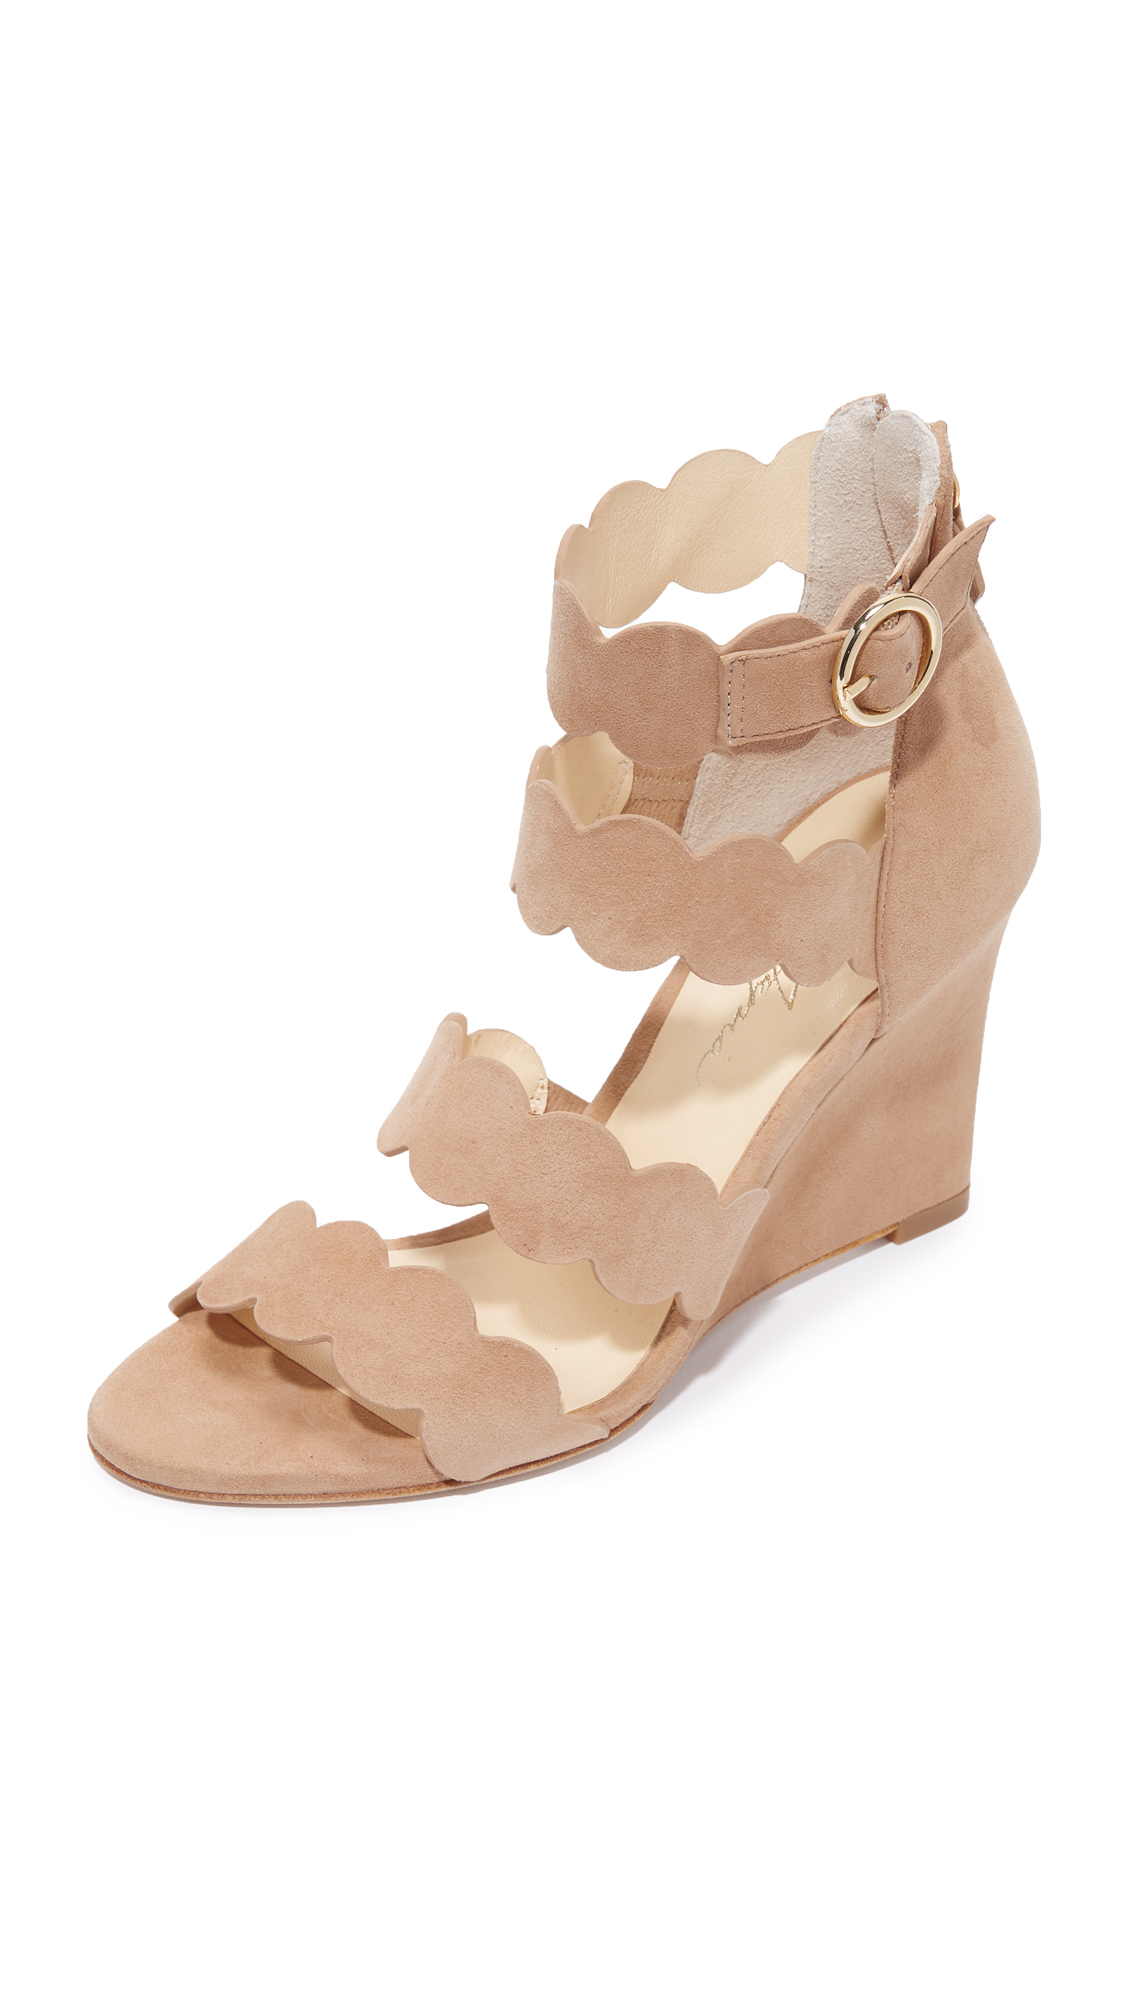 Isa Tapia Paloma Wedge Sandals - Summer Sand